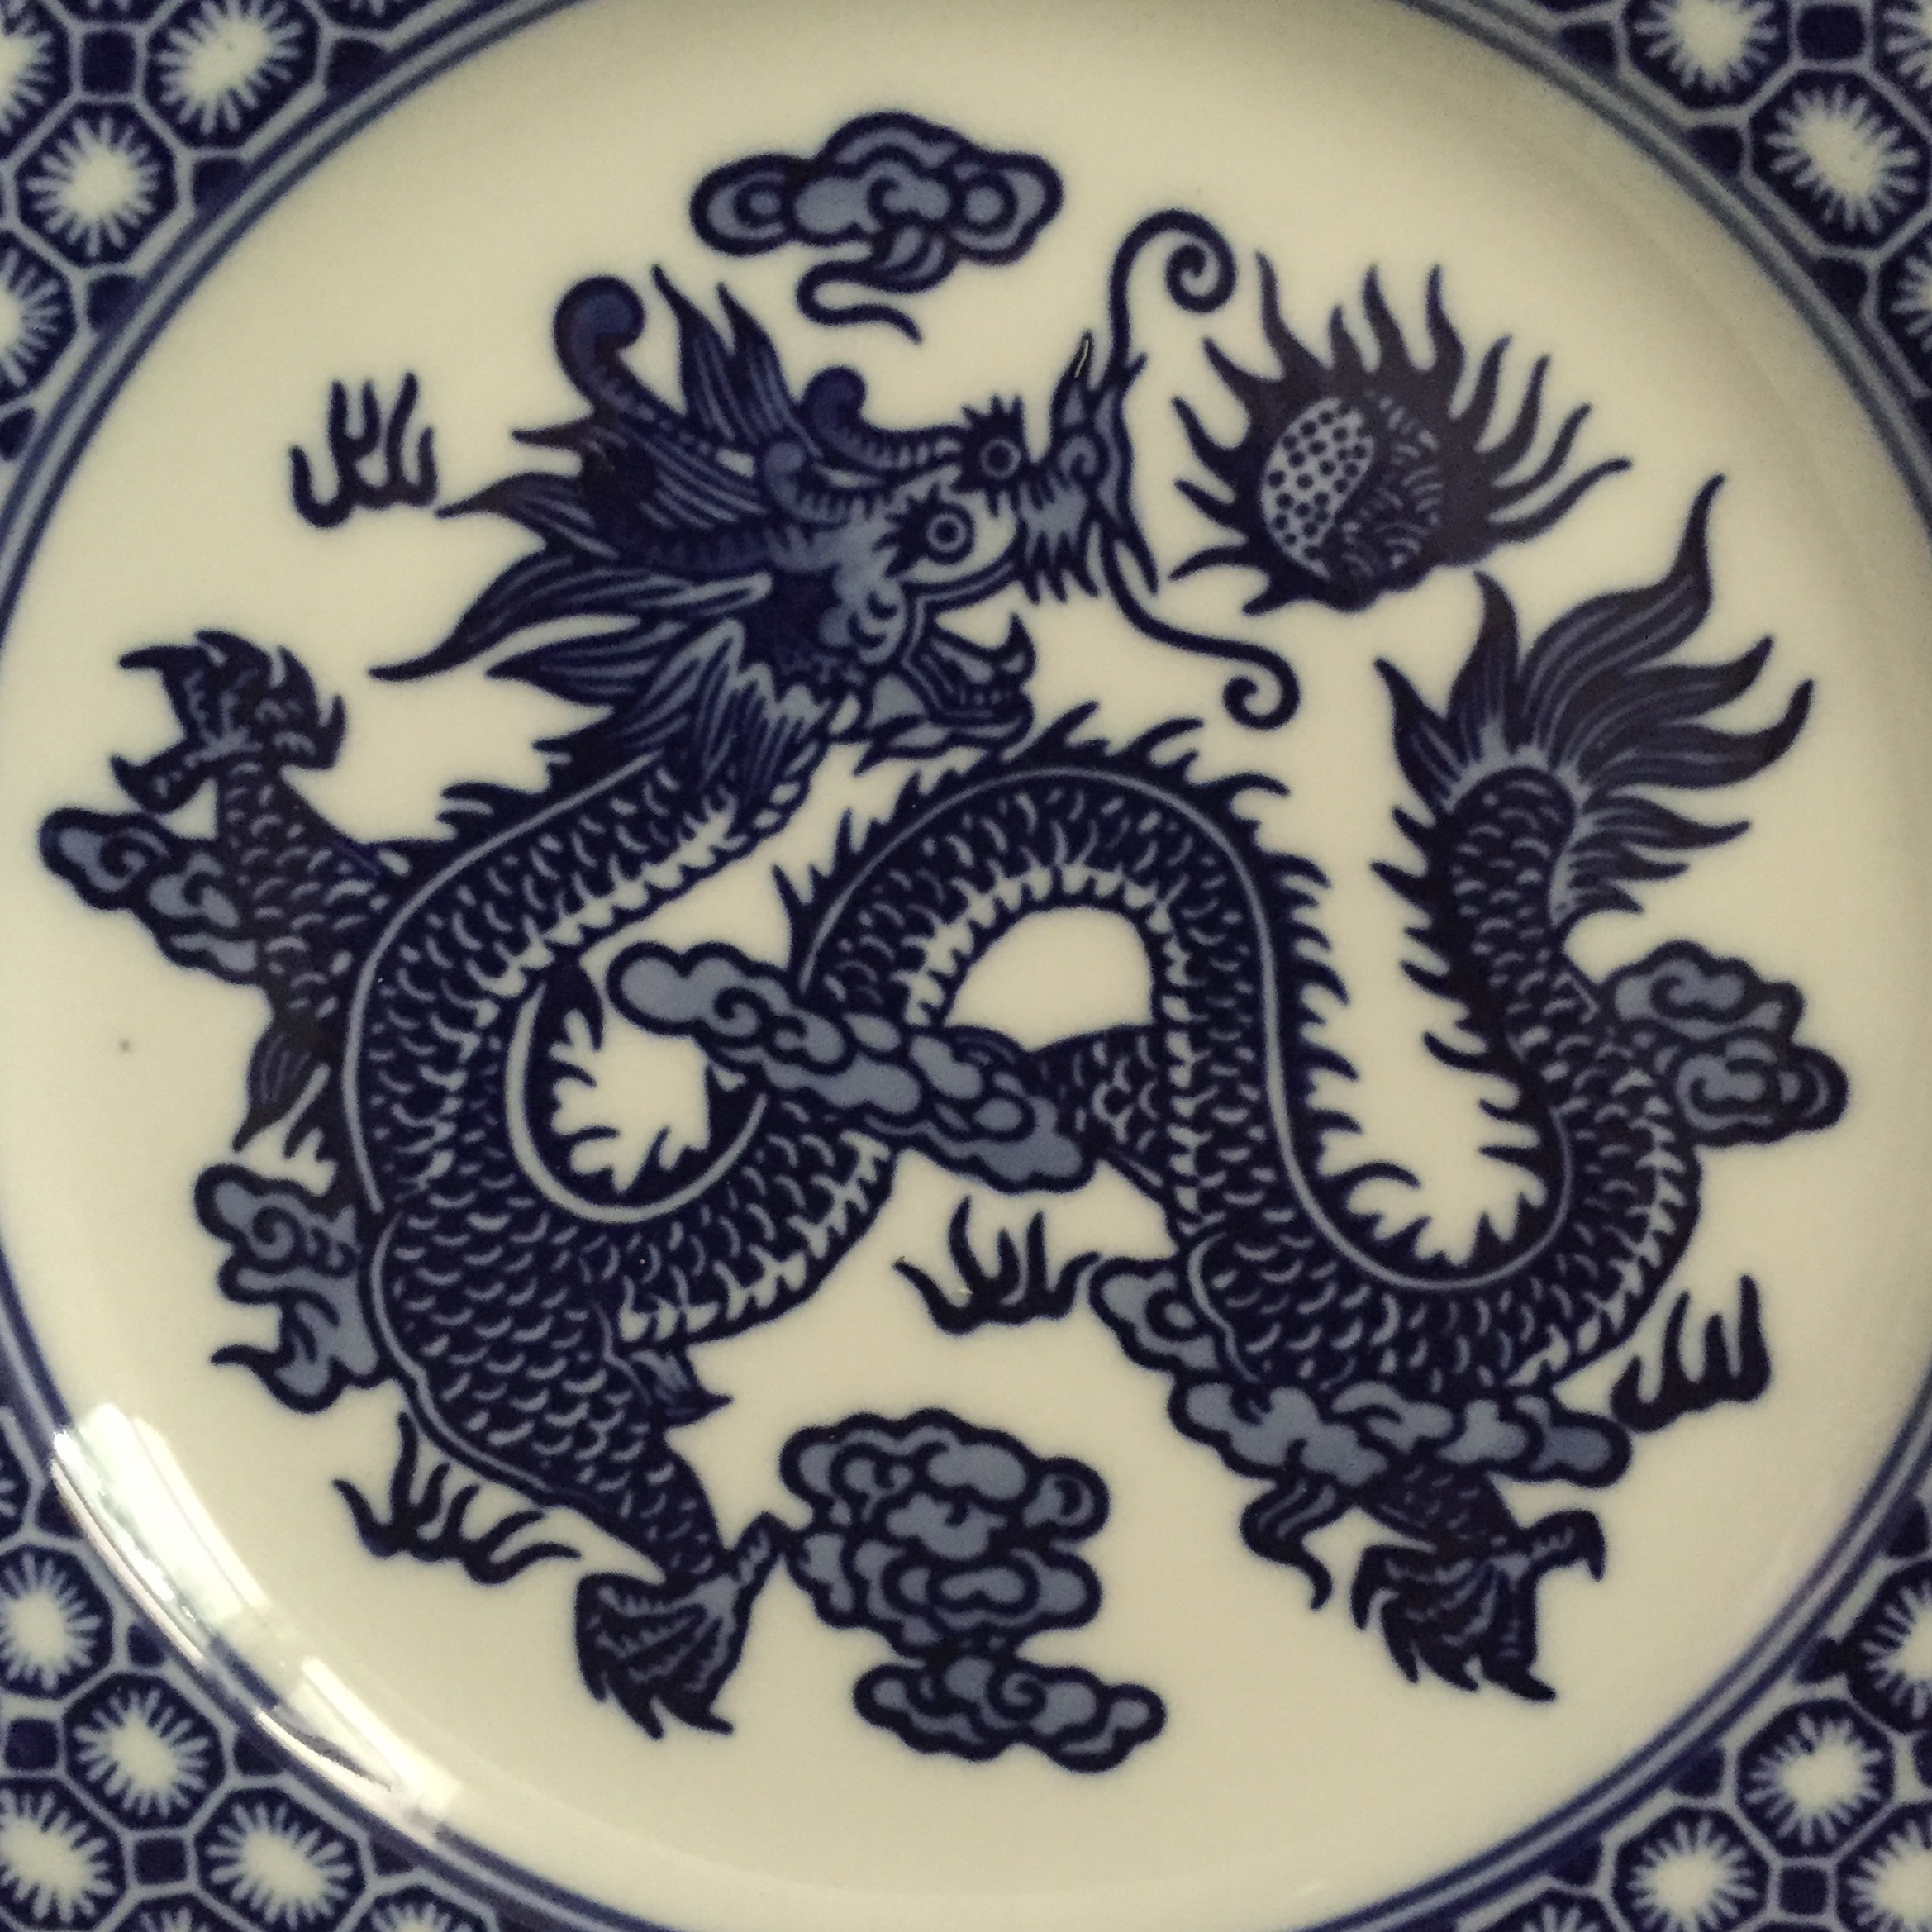 Vintage Chinoiserie Blue and White Asian Foo Dragon Decorative Plates - a Pair - Image 4 & Vintage Chinoiserie Blue and White Asian Foo Dragon Decorative ...